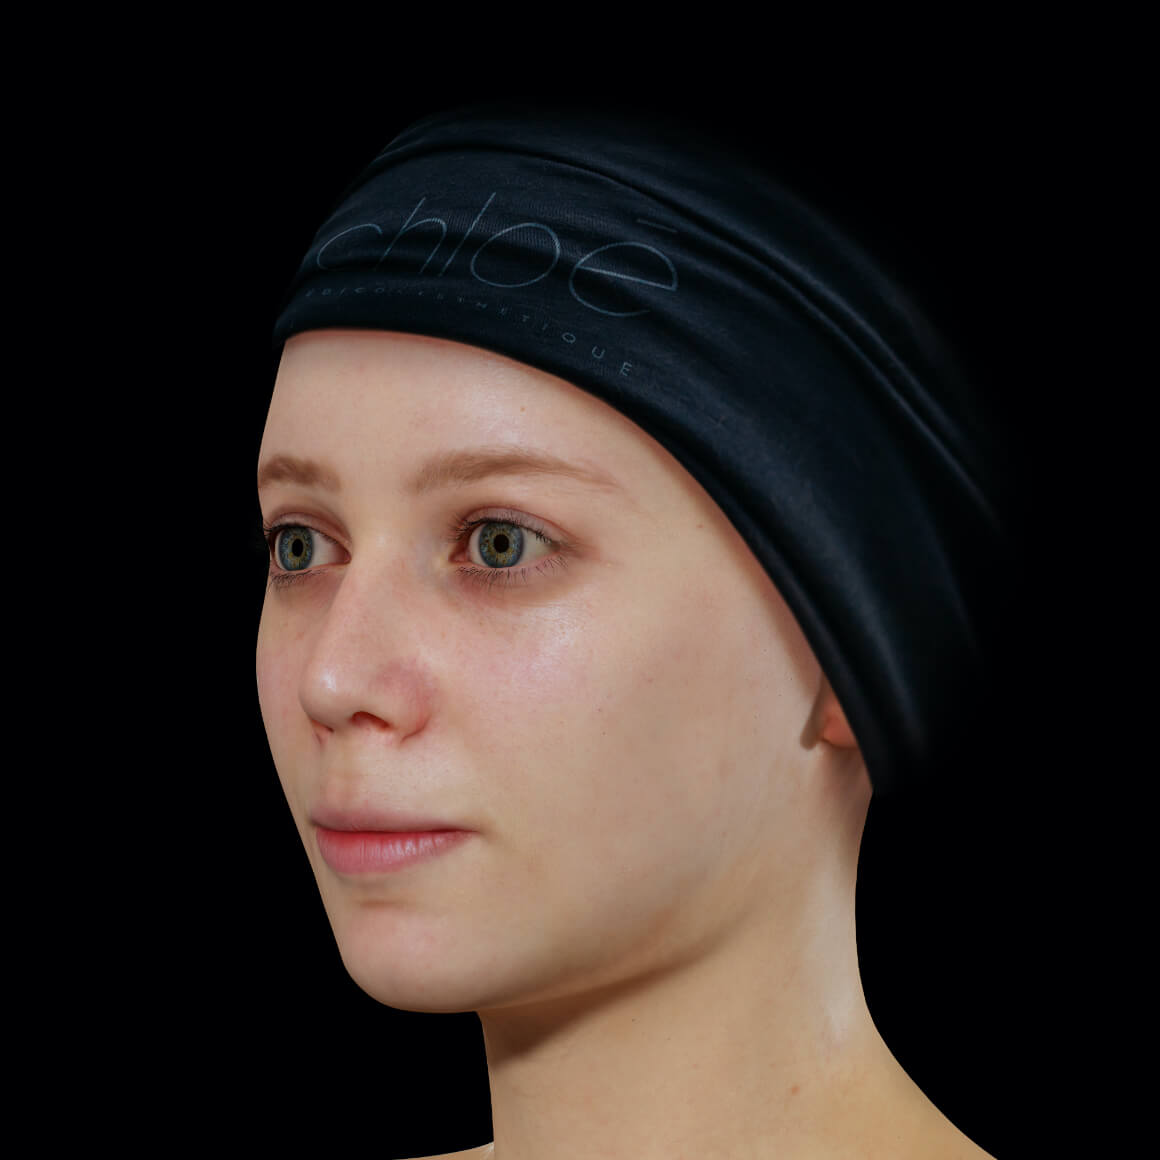 Female patient from Clinique Chloé at an angle after chemical peels to treat facial active acne